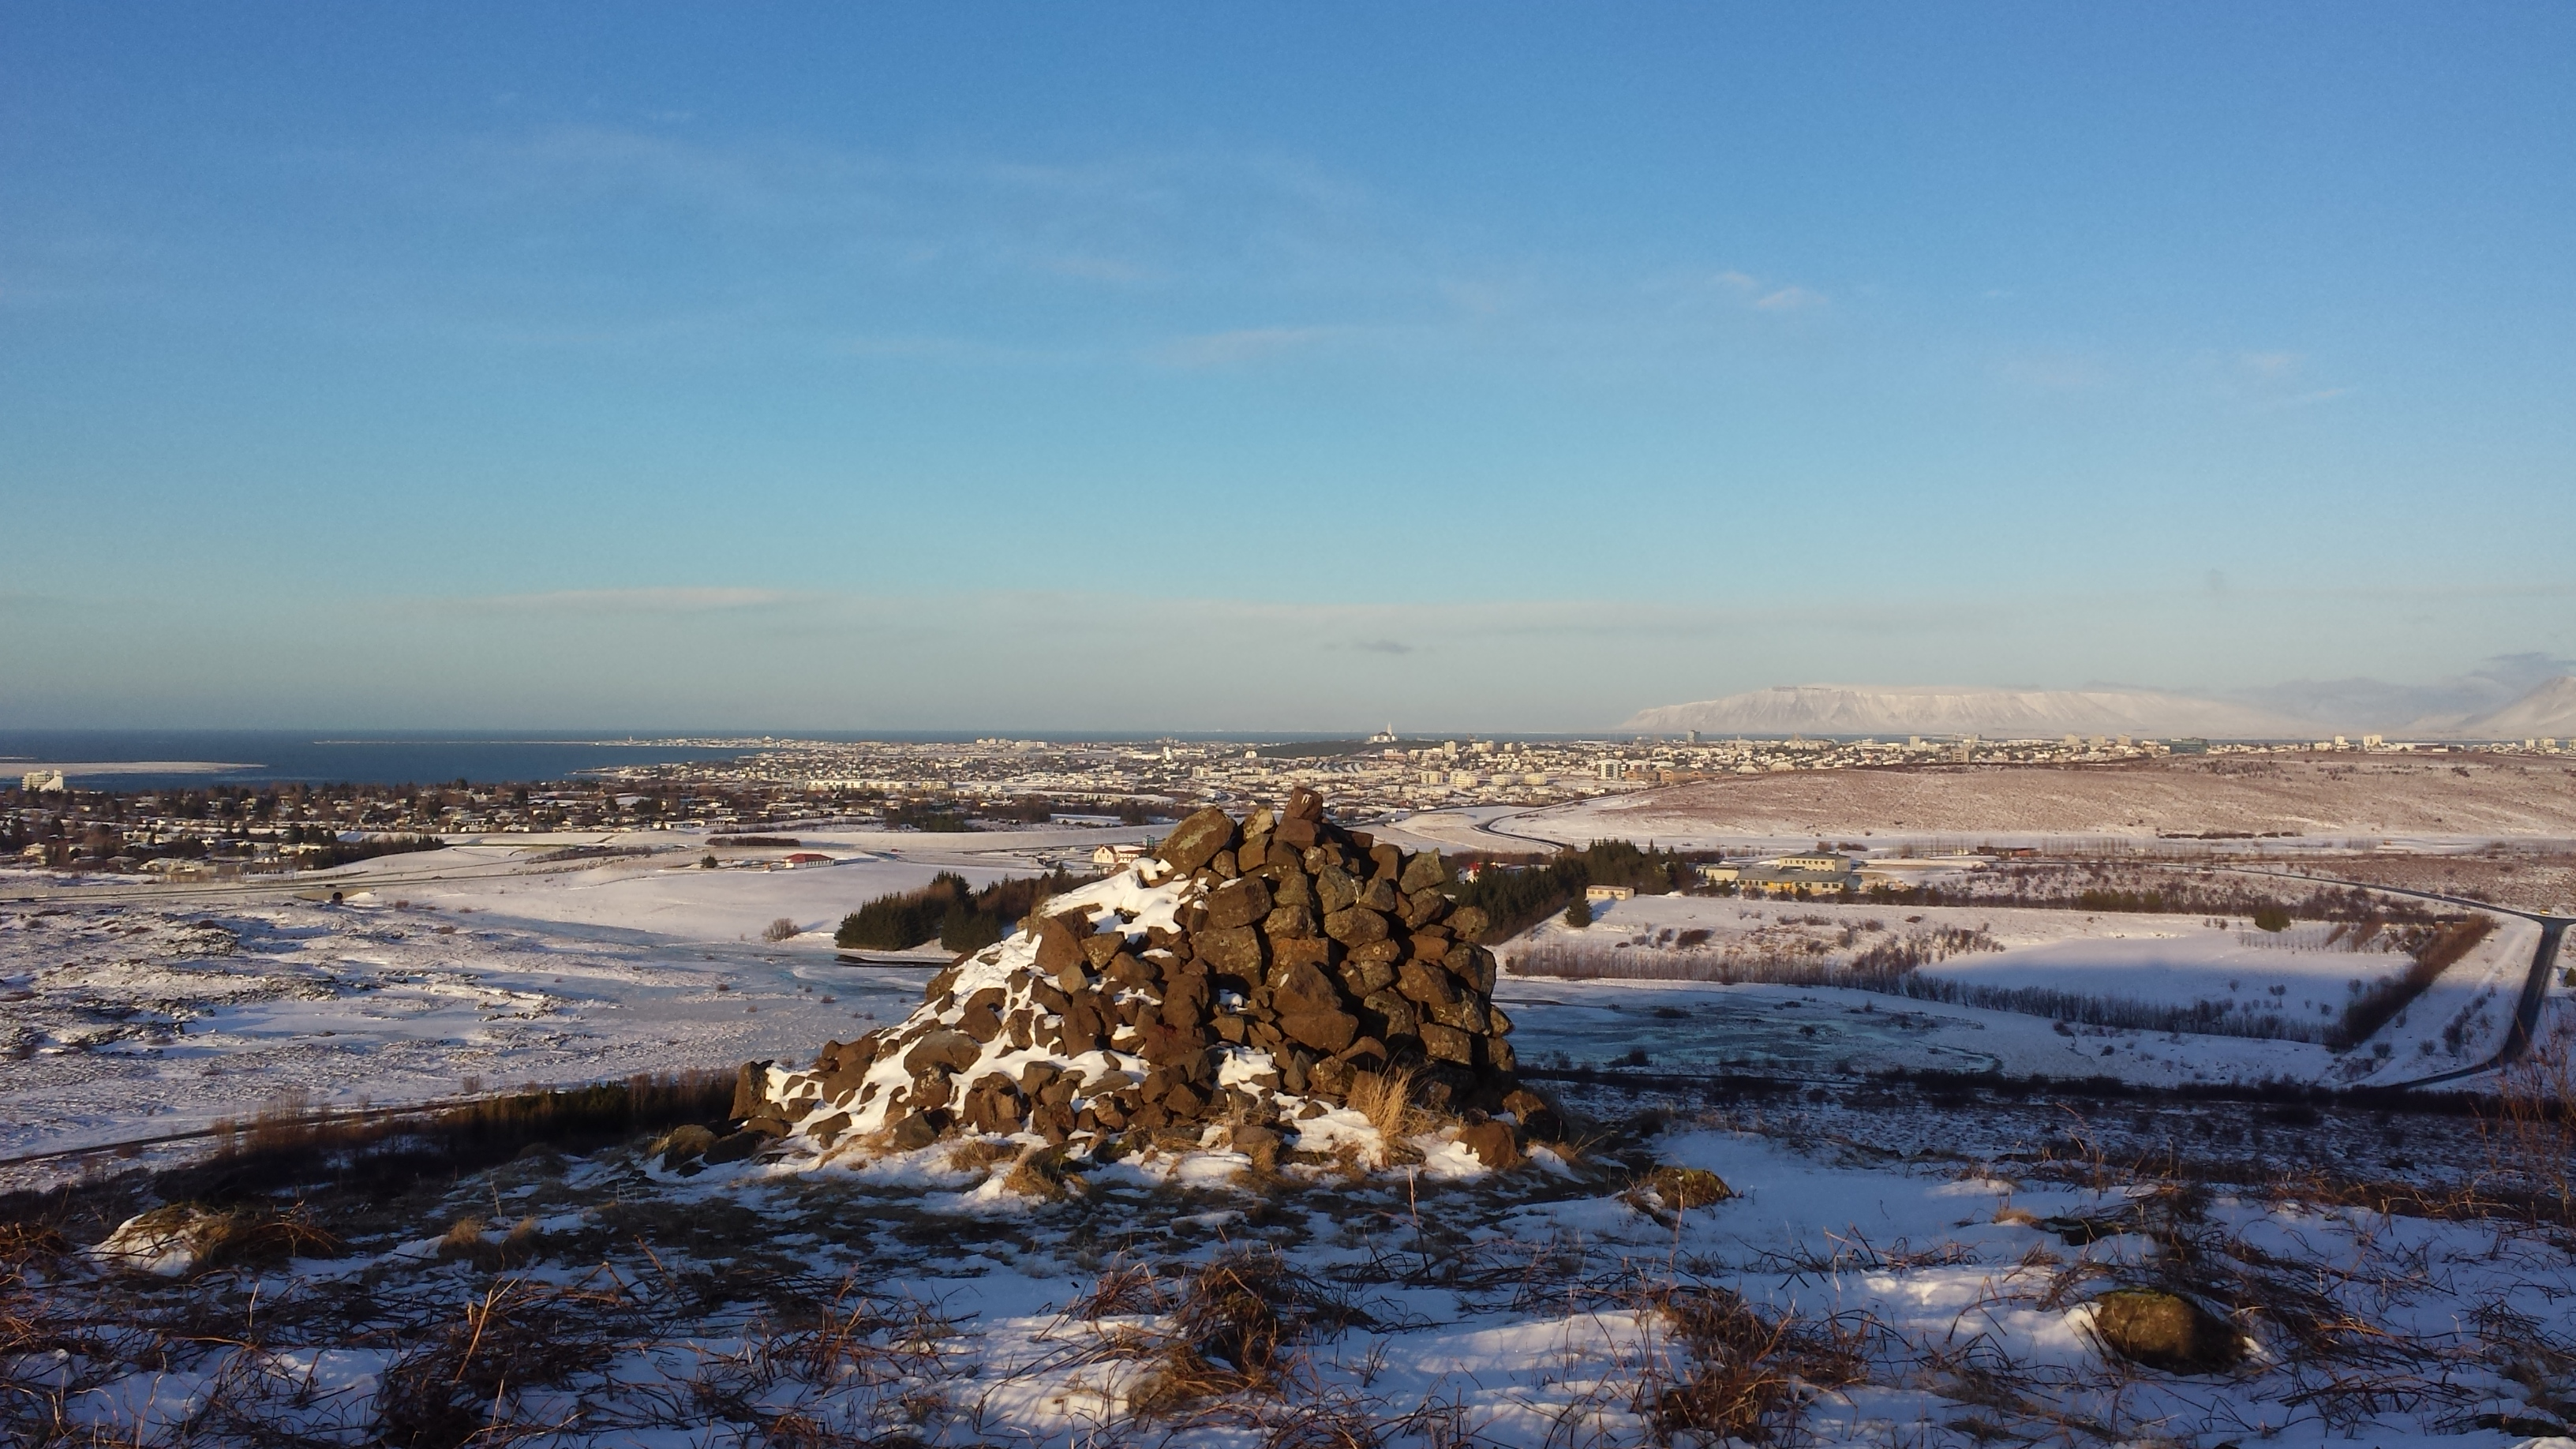 Hiking up to the Cairn Gunnhildur gives excellent view towards the Reykjavik area.